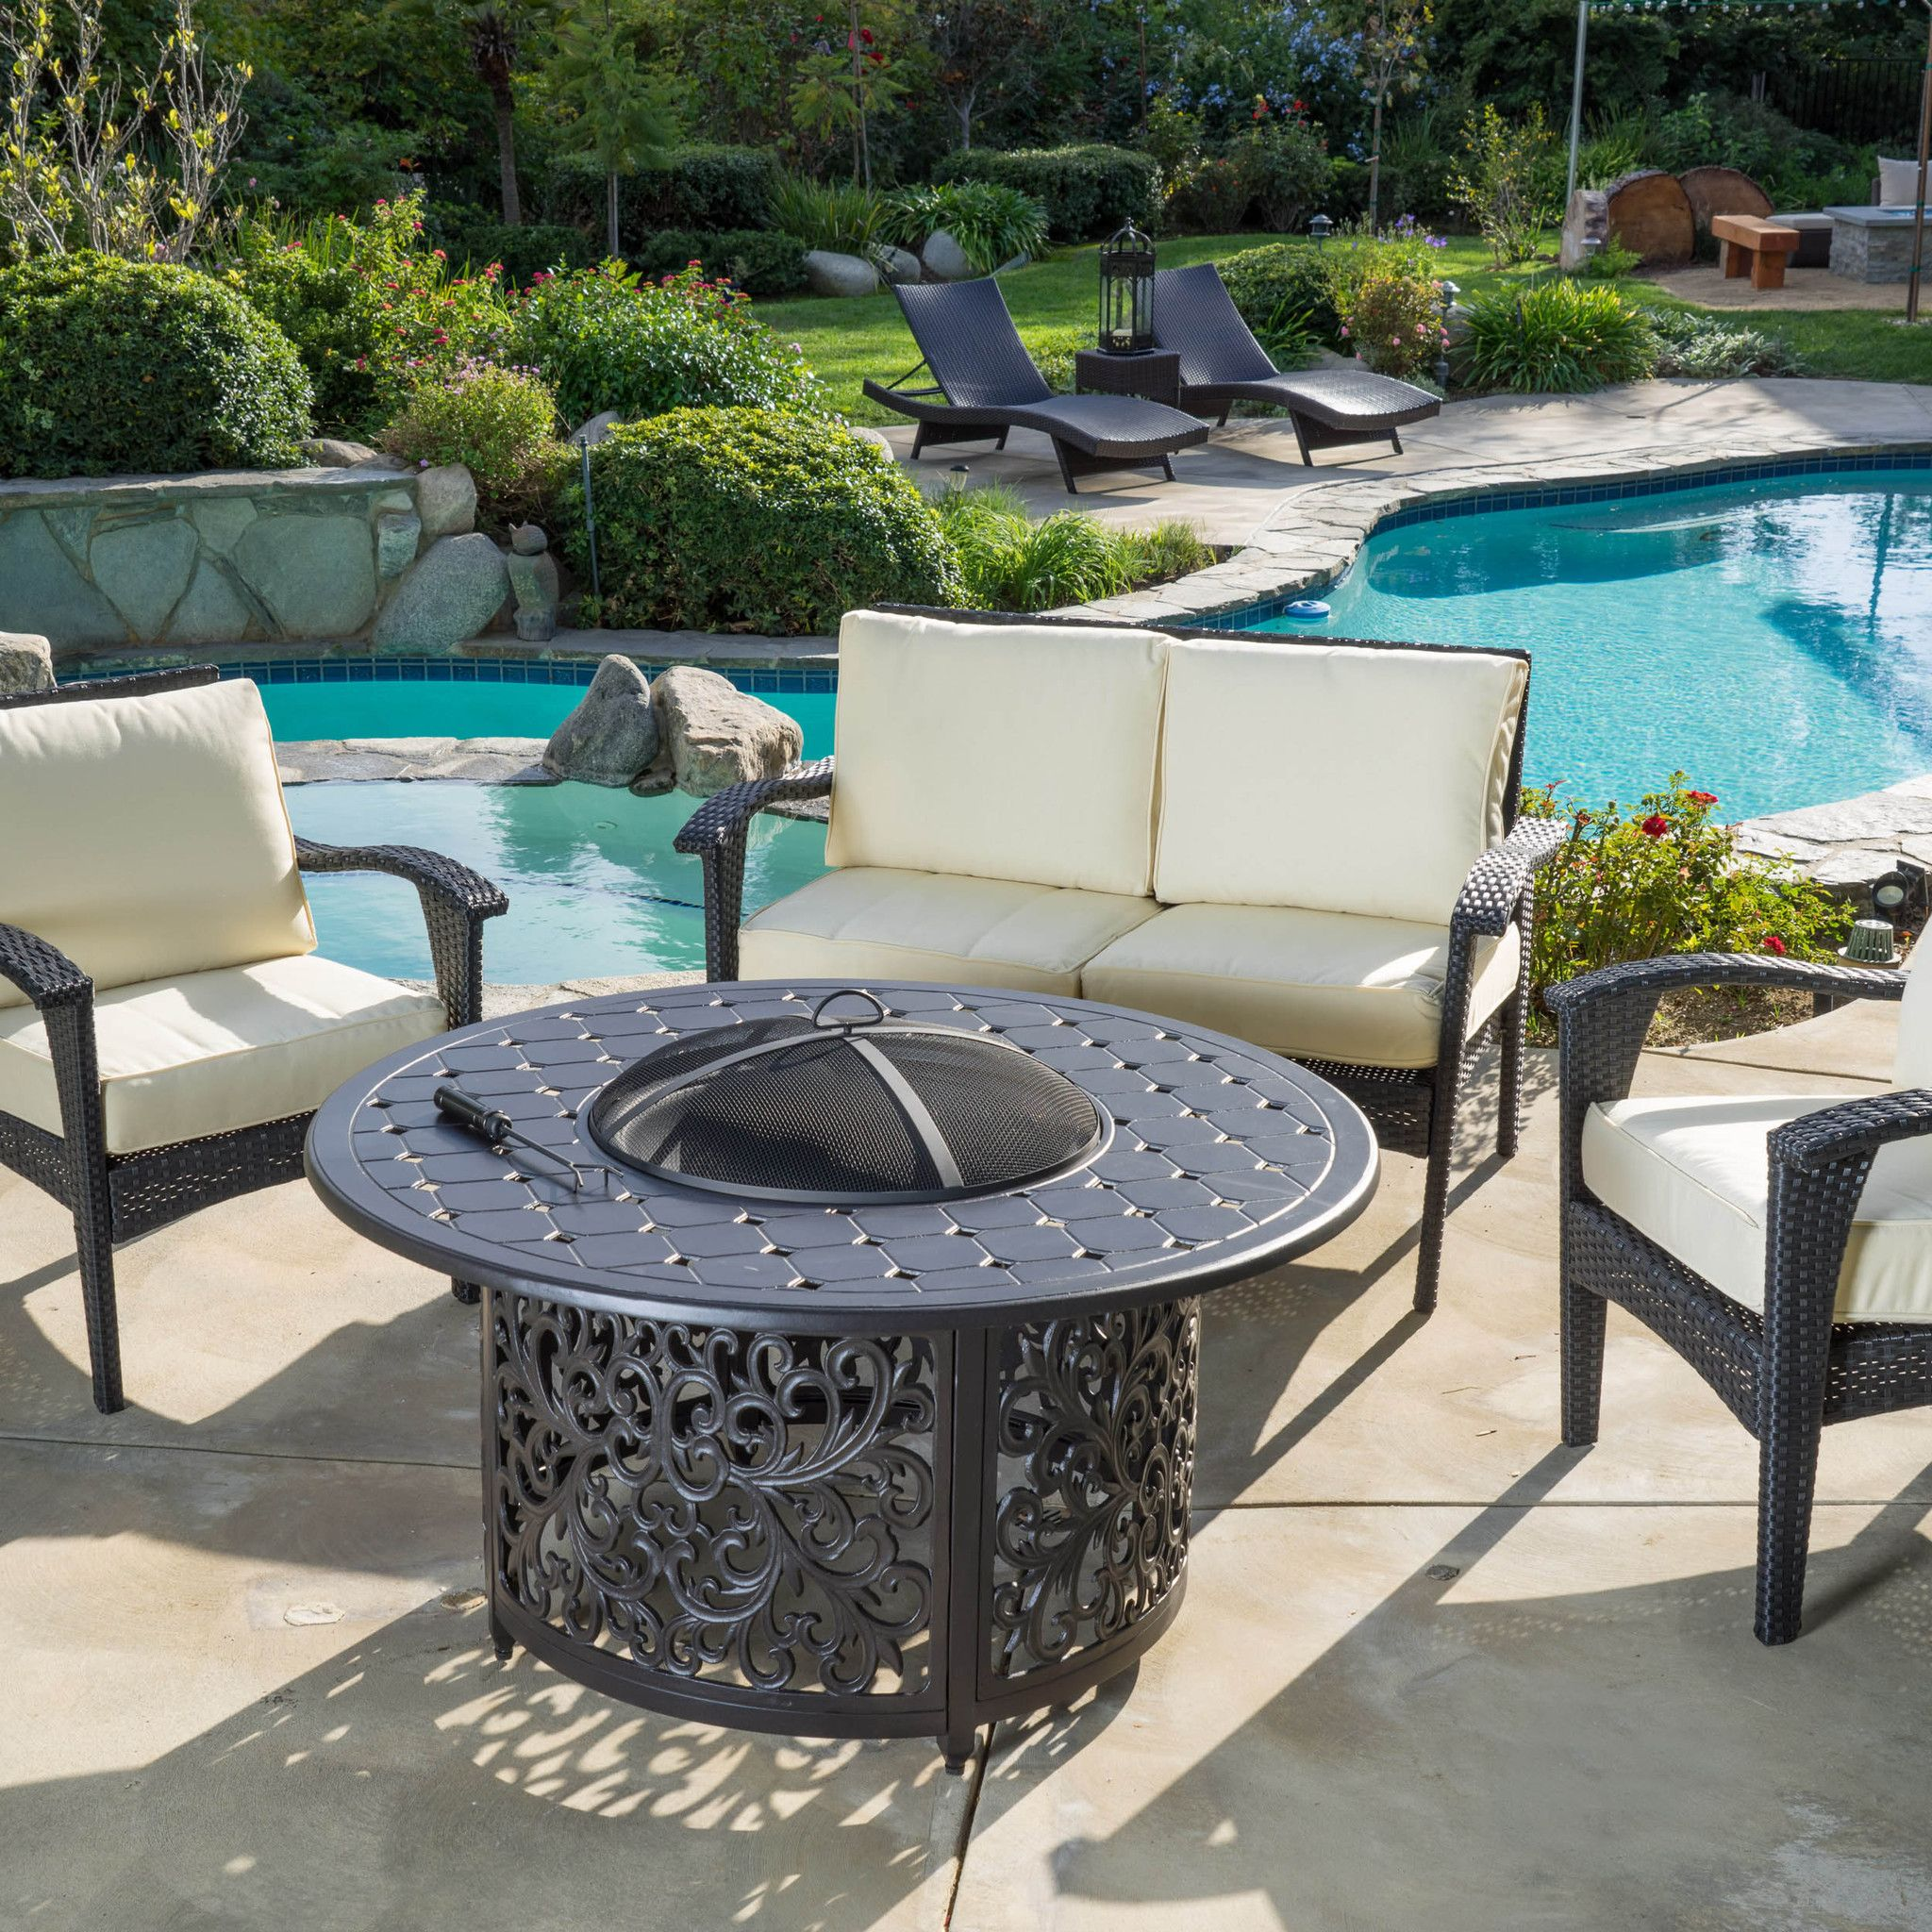 Gonzalo Outdoor Elegant Charcoal Grey Ceramic Fire Pit ... on For Living Lawrence Fire Pit id=80510